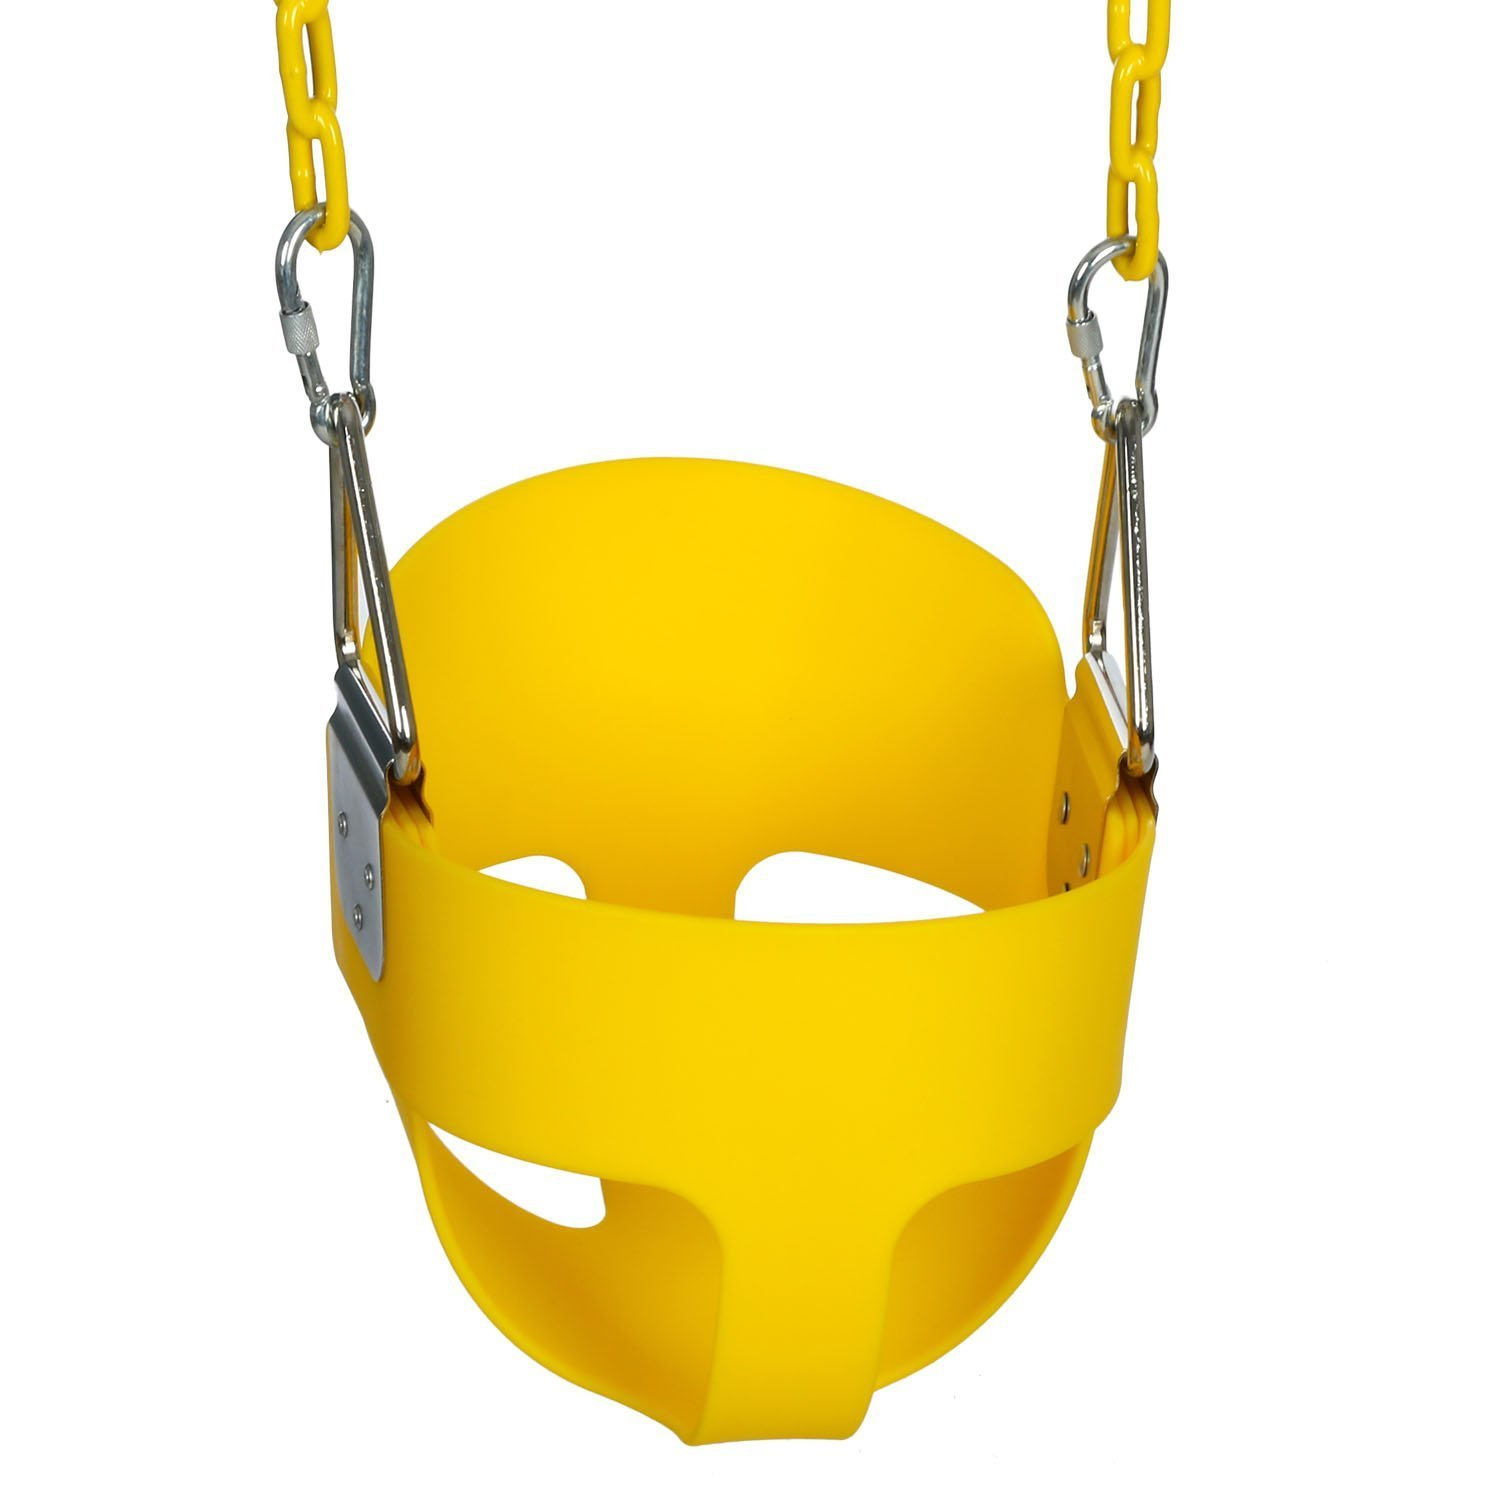 Cheesea Toddler's Swing Seat with Coated Swing Chains High Back Full Bucket Infant Swinging Set Ideal Kids Outdoor Toy (Yellow)